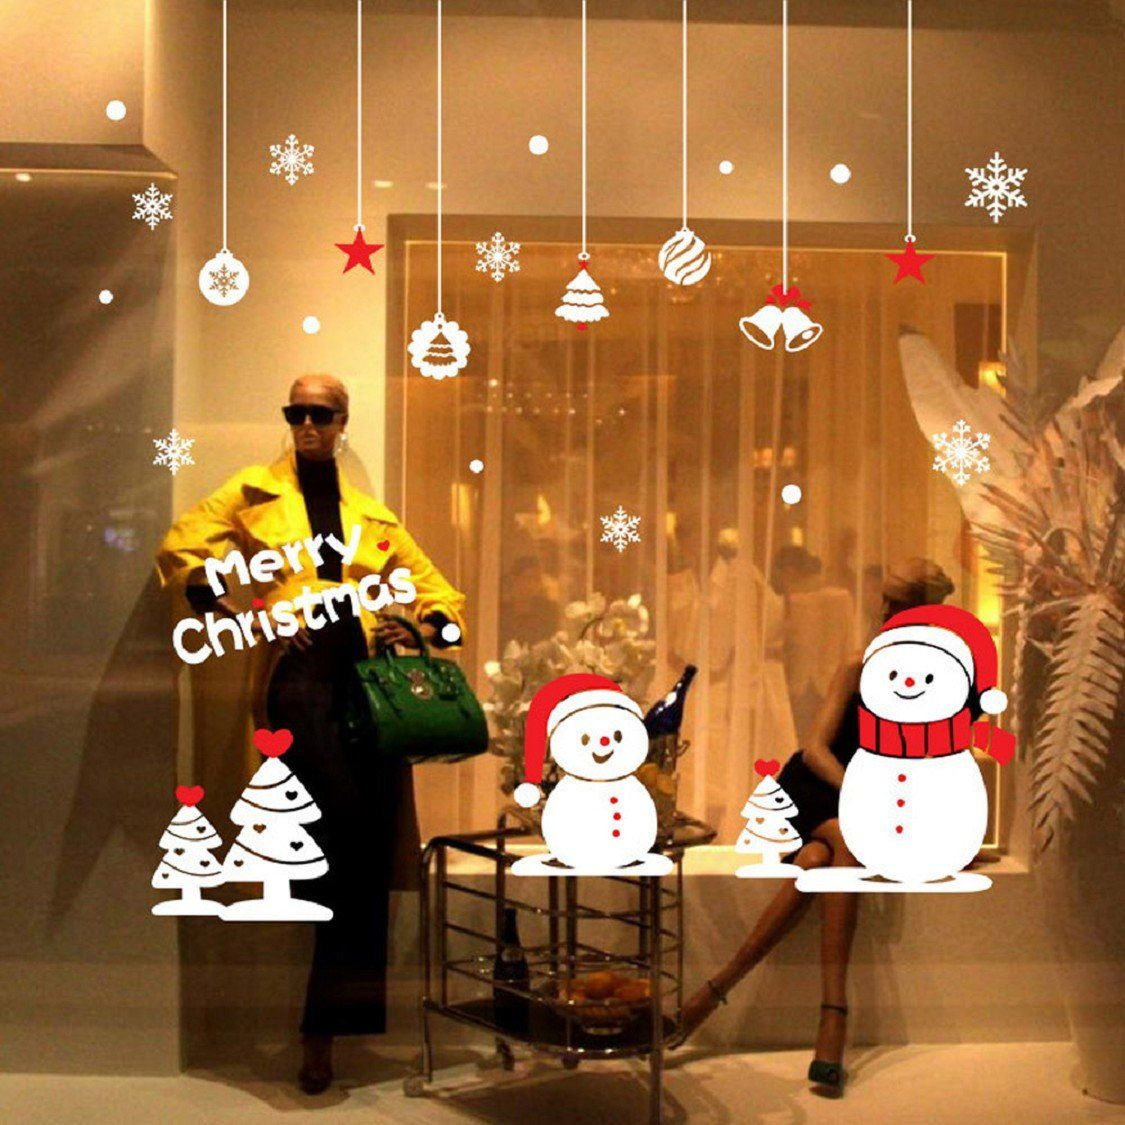 Removable Office Home Vinyl Window Wall Stickers Decor Decals Christmas Snowman